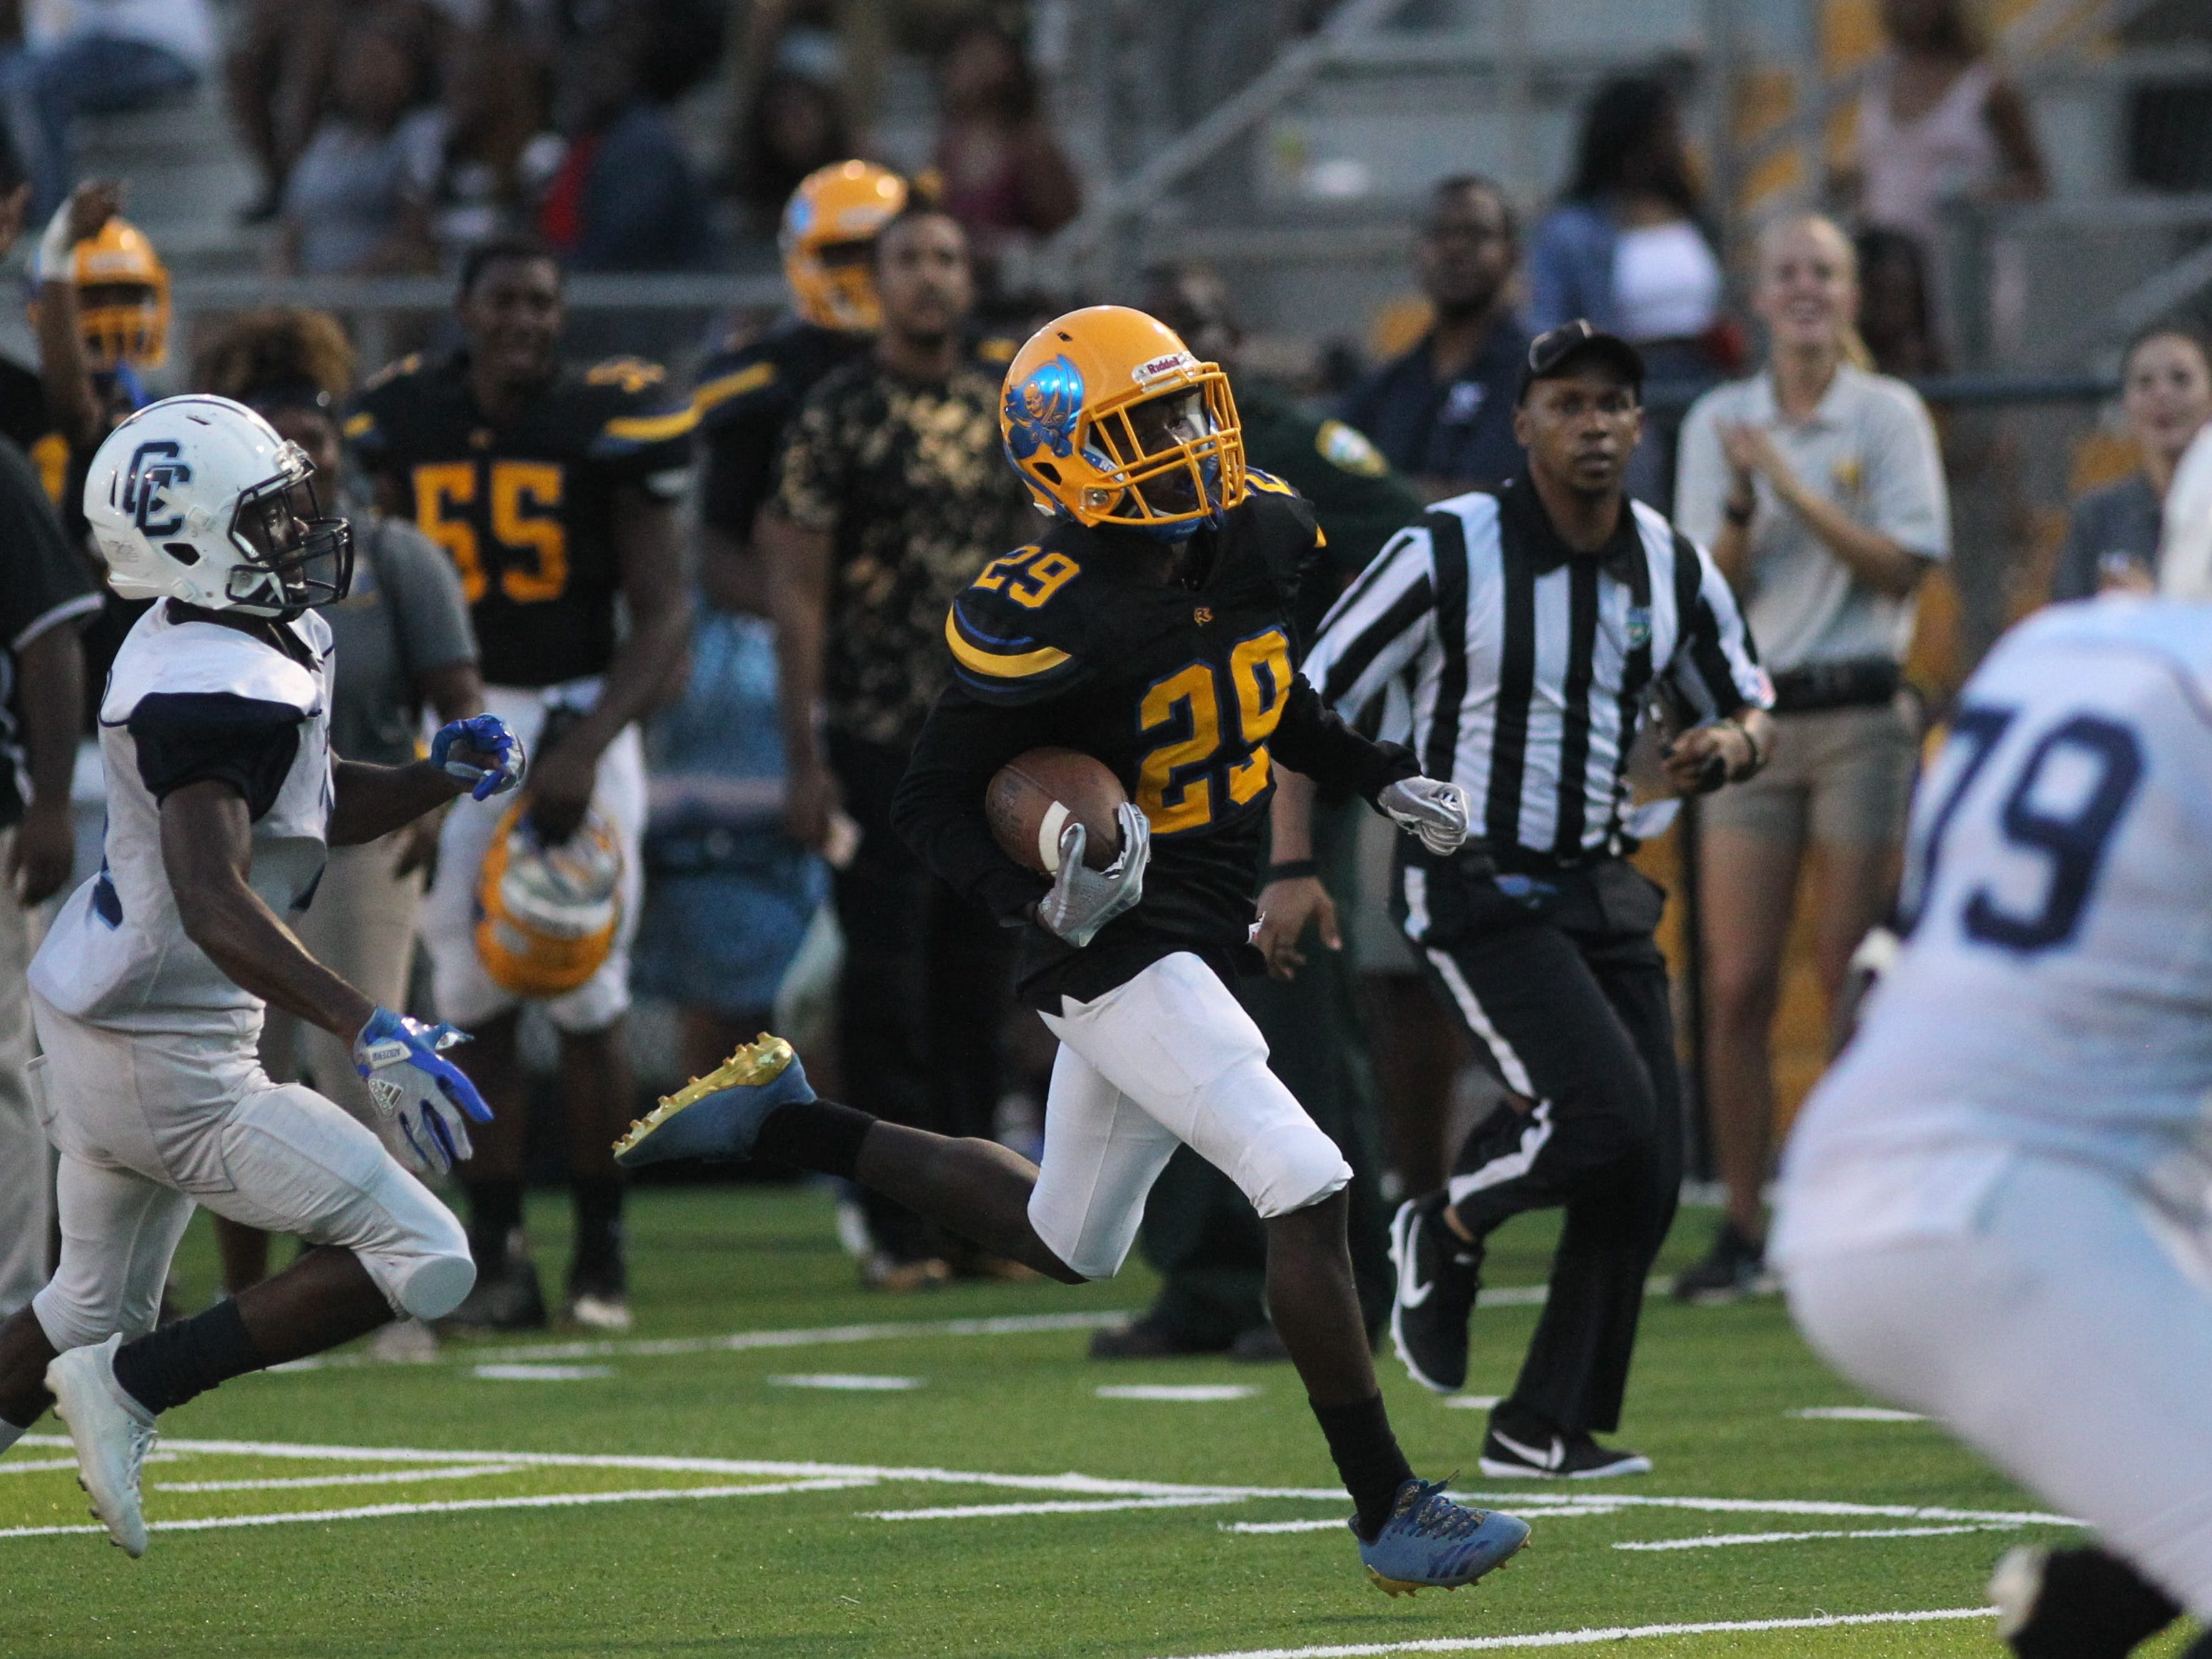 Kameron Bell returns an interception to the 4-yard line to set up a touchdown as Rickards beat Gadsden County 55-32 at Gene Cox Stadium on Thursday, Sept. 13, 2018.